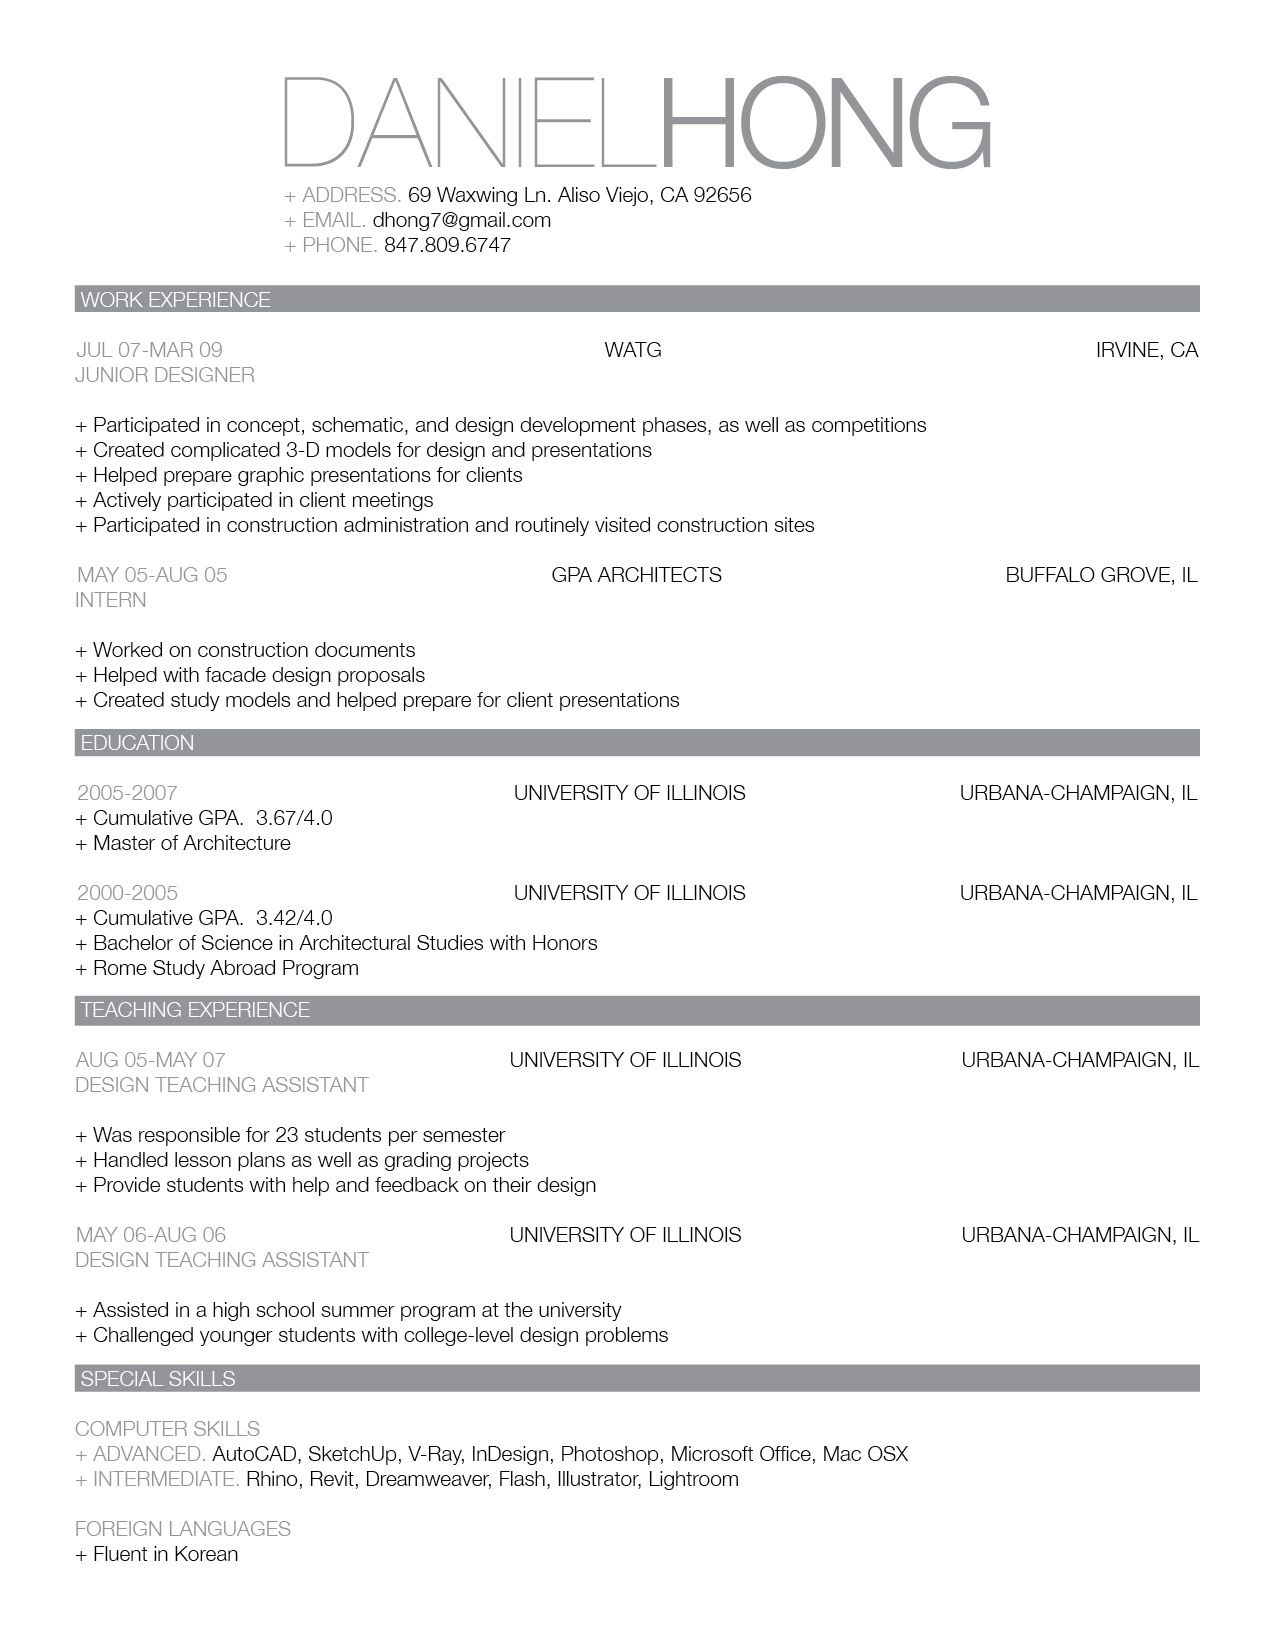 Best Resume Template To Use Updated Cv And Work Sample  Professional Resume Sample Resume